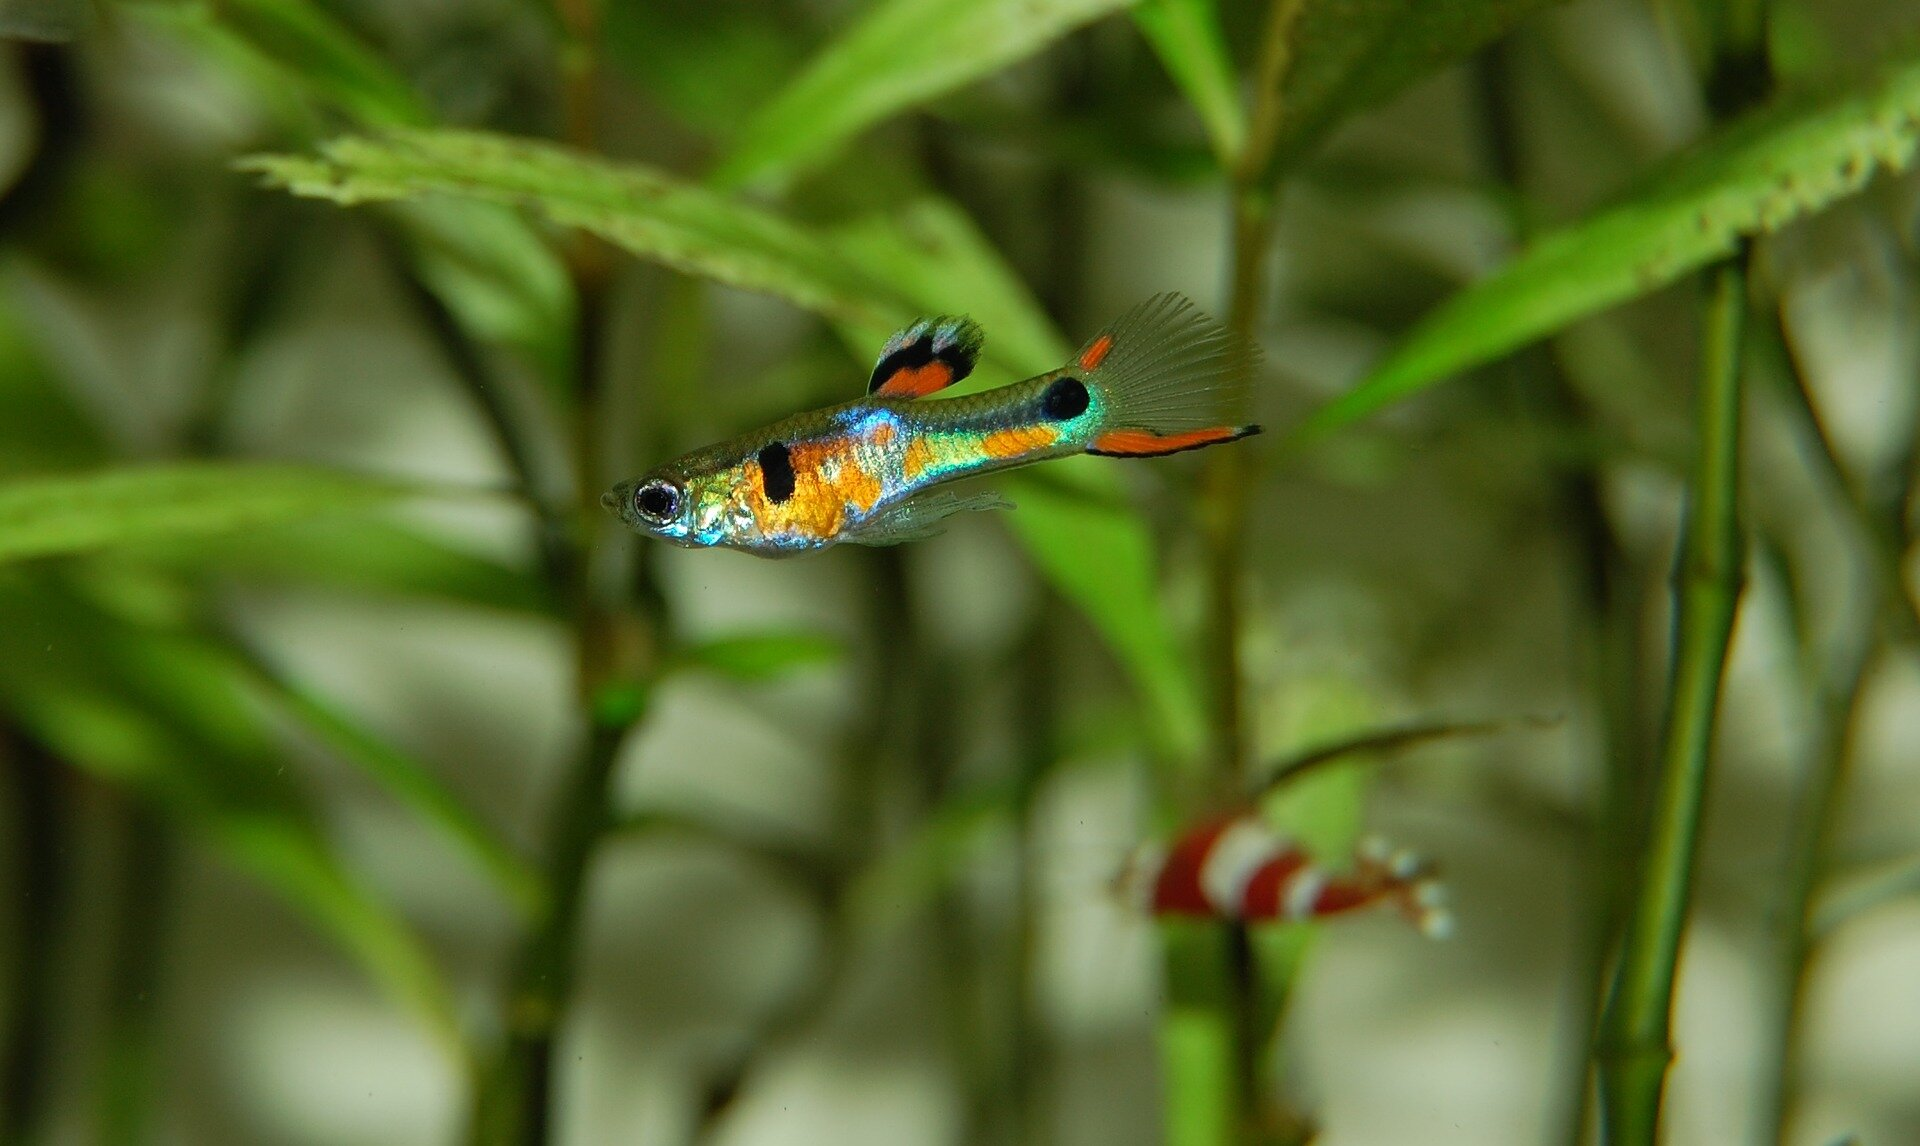 Male fish can thank genes for colourful looks